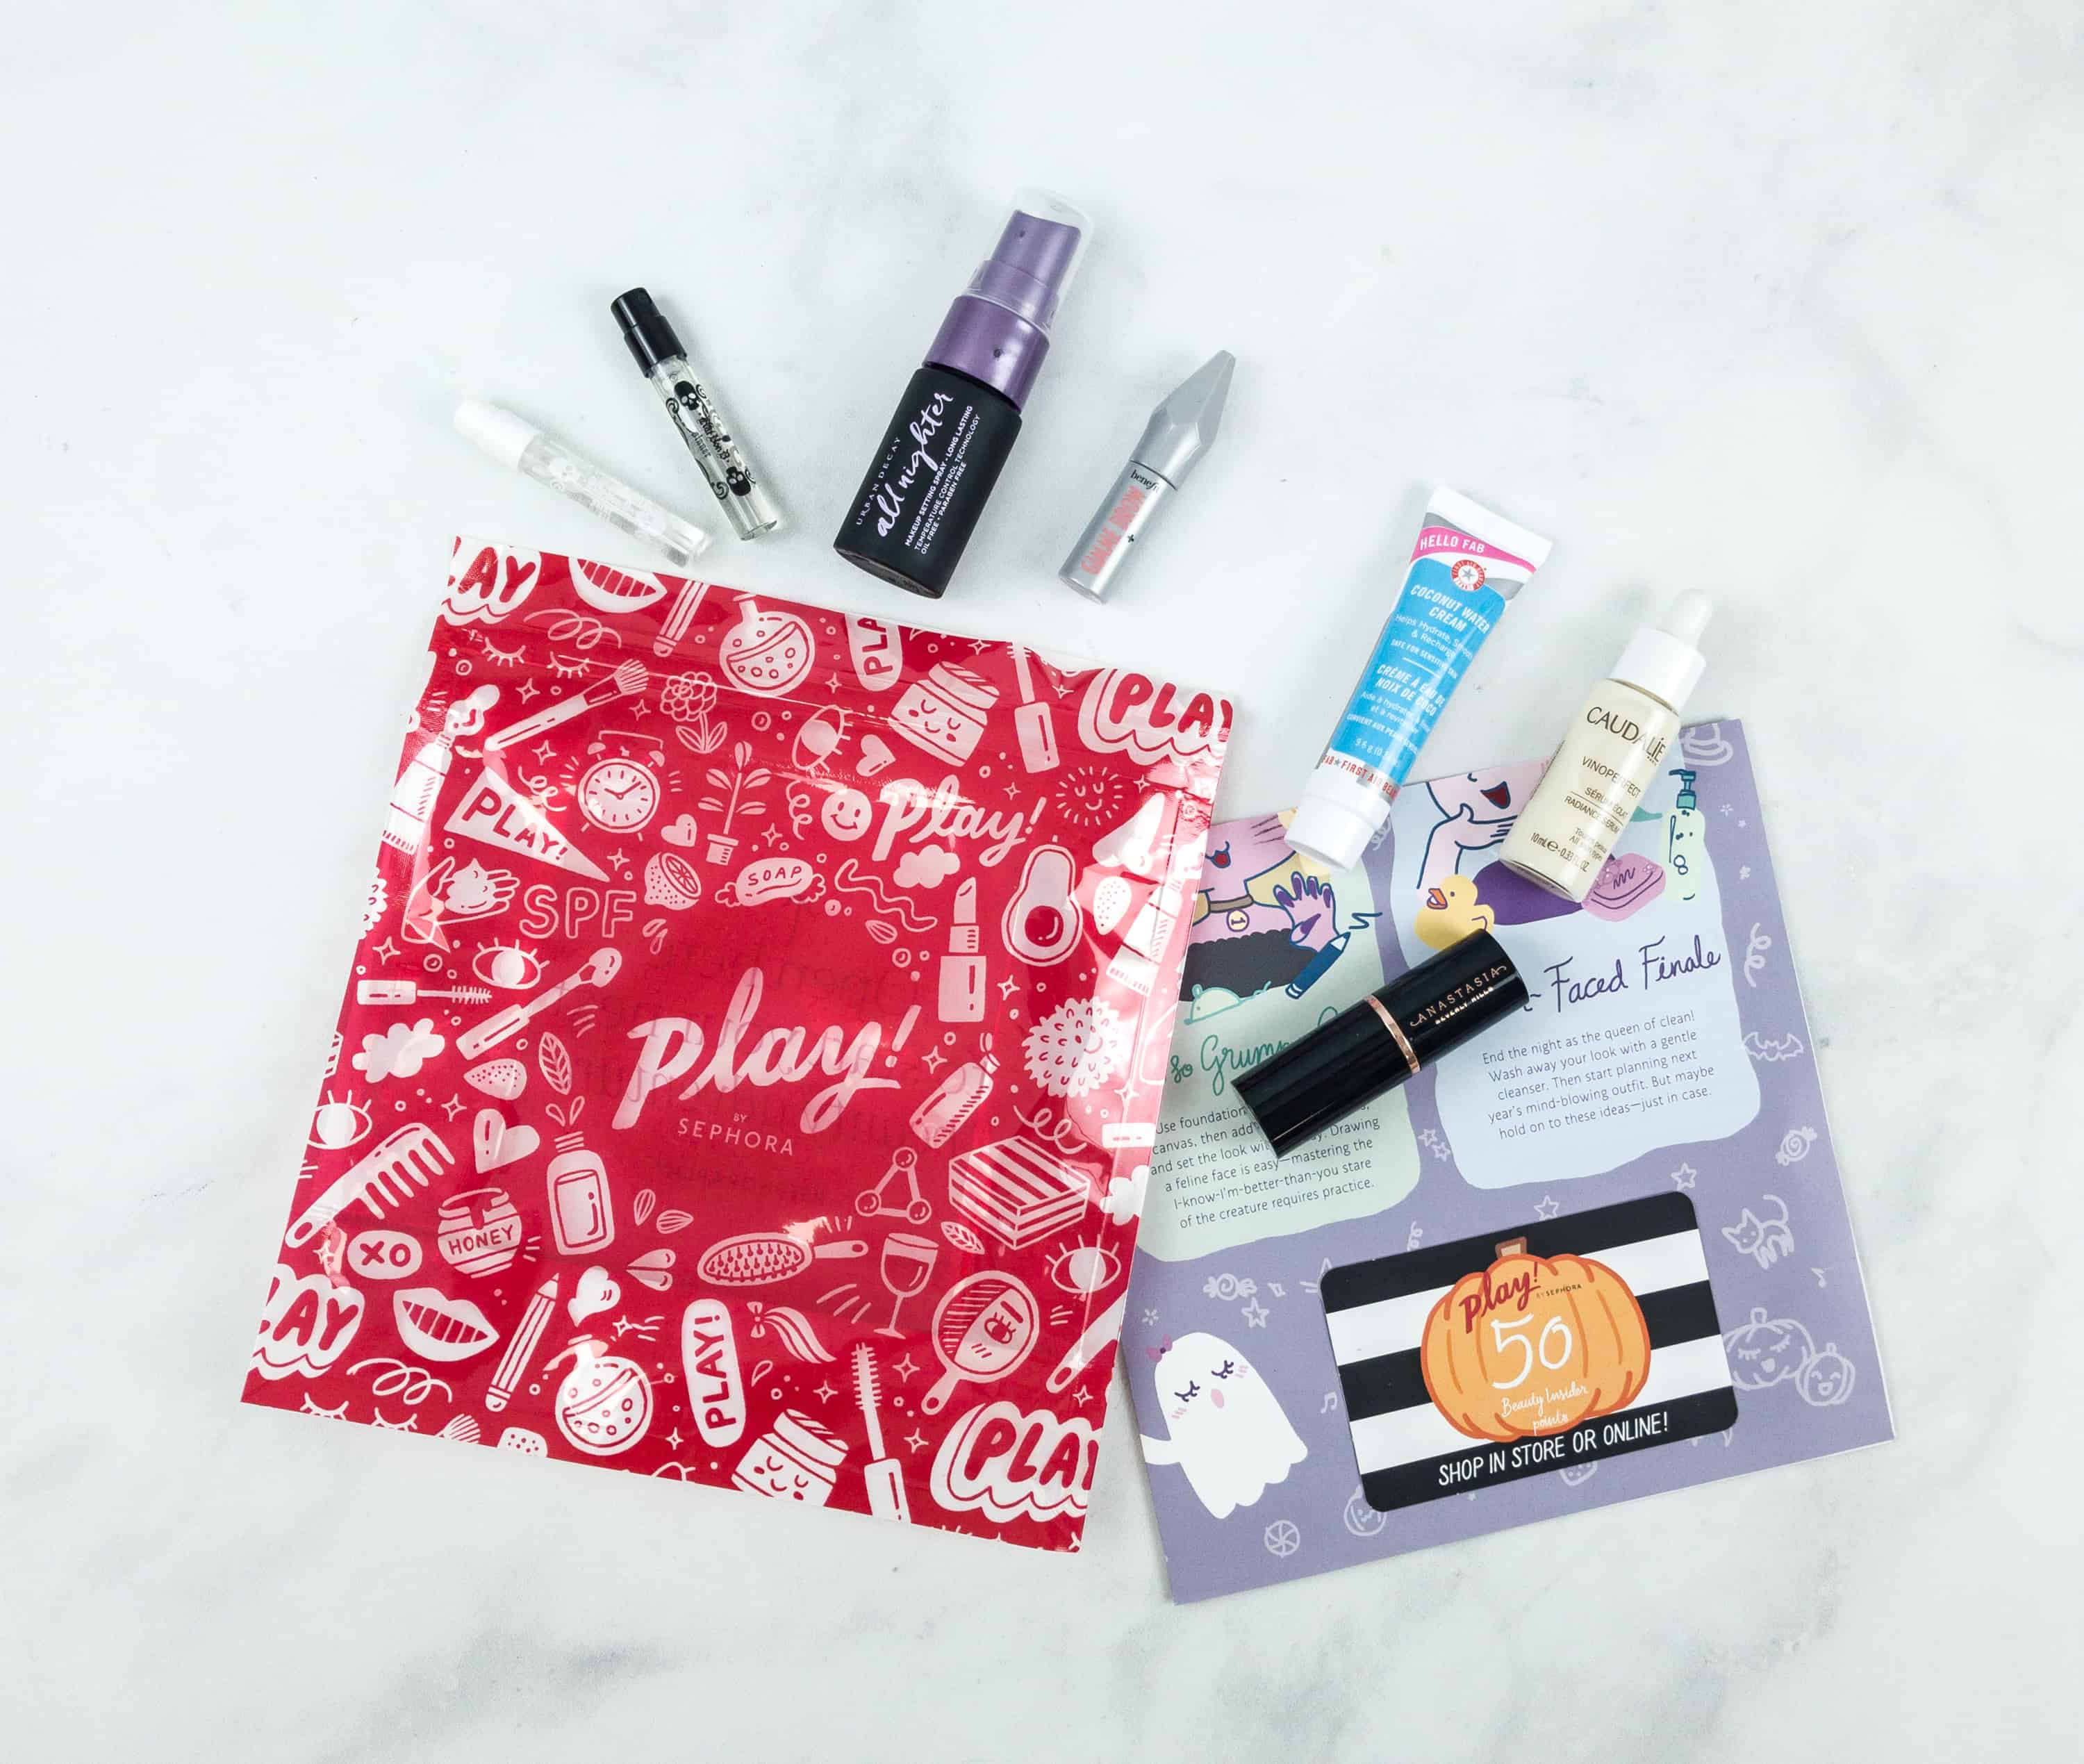 Play! by Sephora October 2018 Subscription Box Review